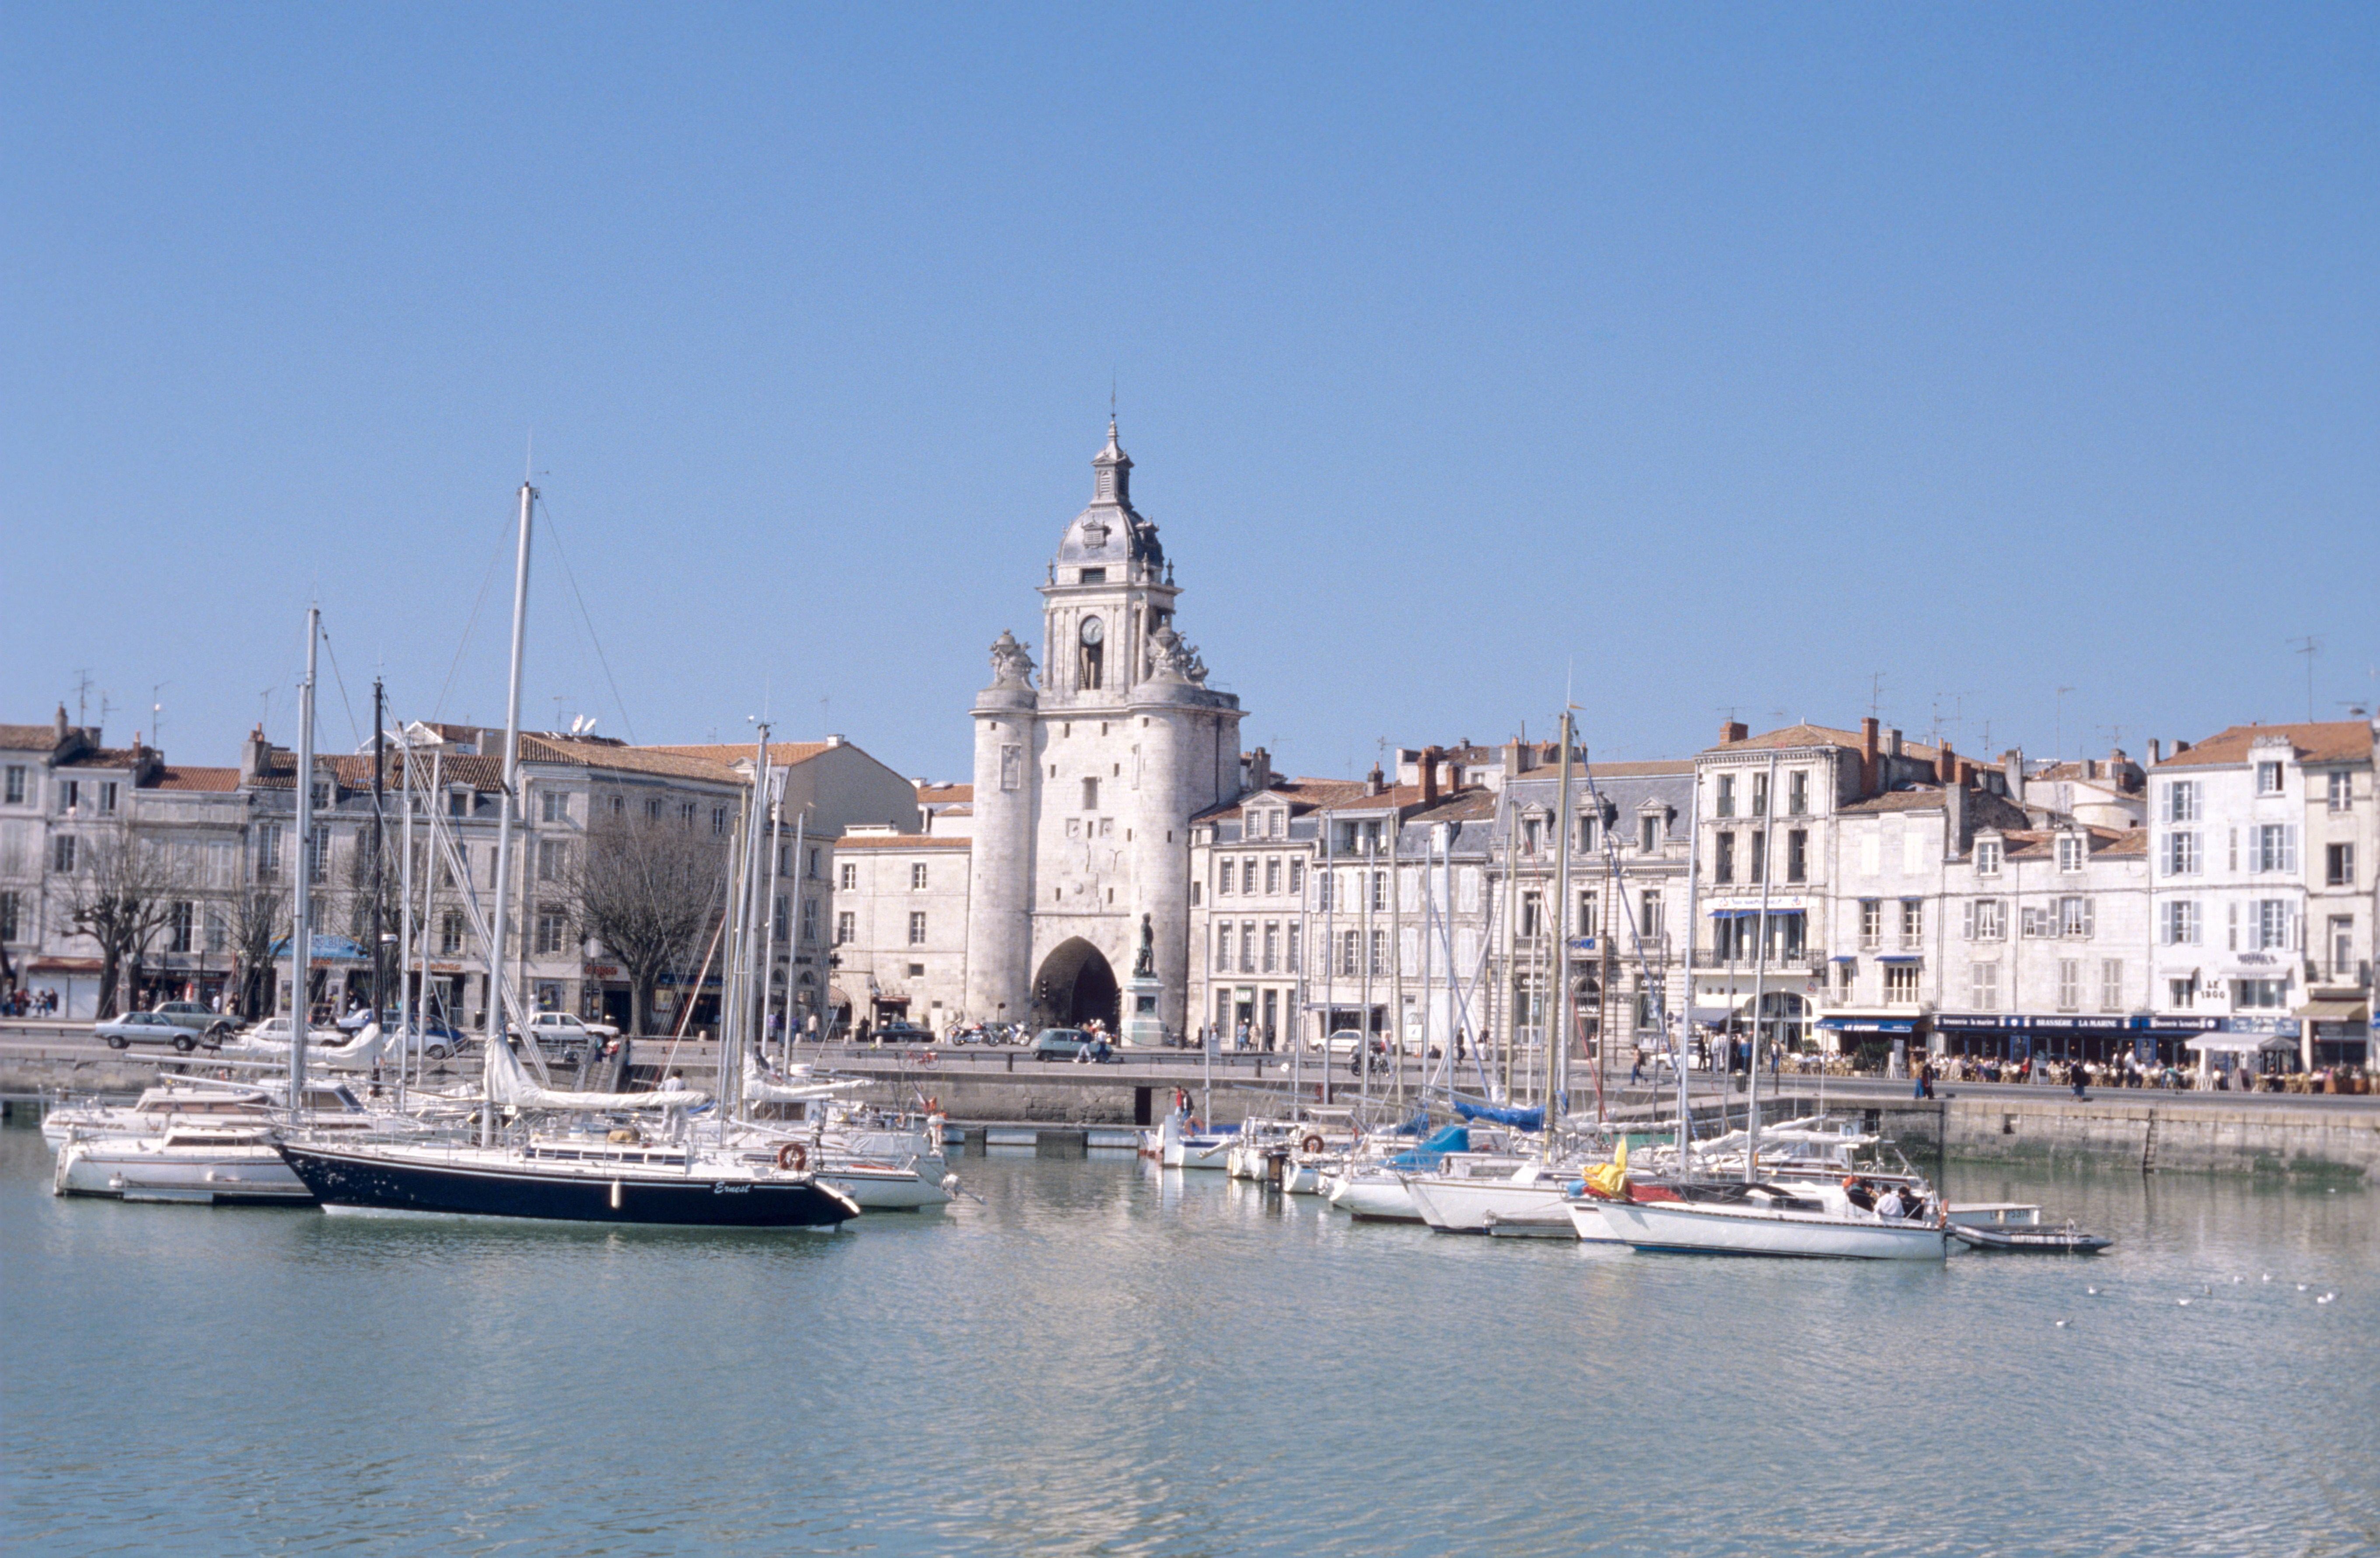 la rochelle charente maritime wikipedia autos post. Black Bedroom Furniture Sets. Home Design Ideas